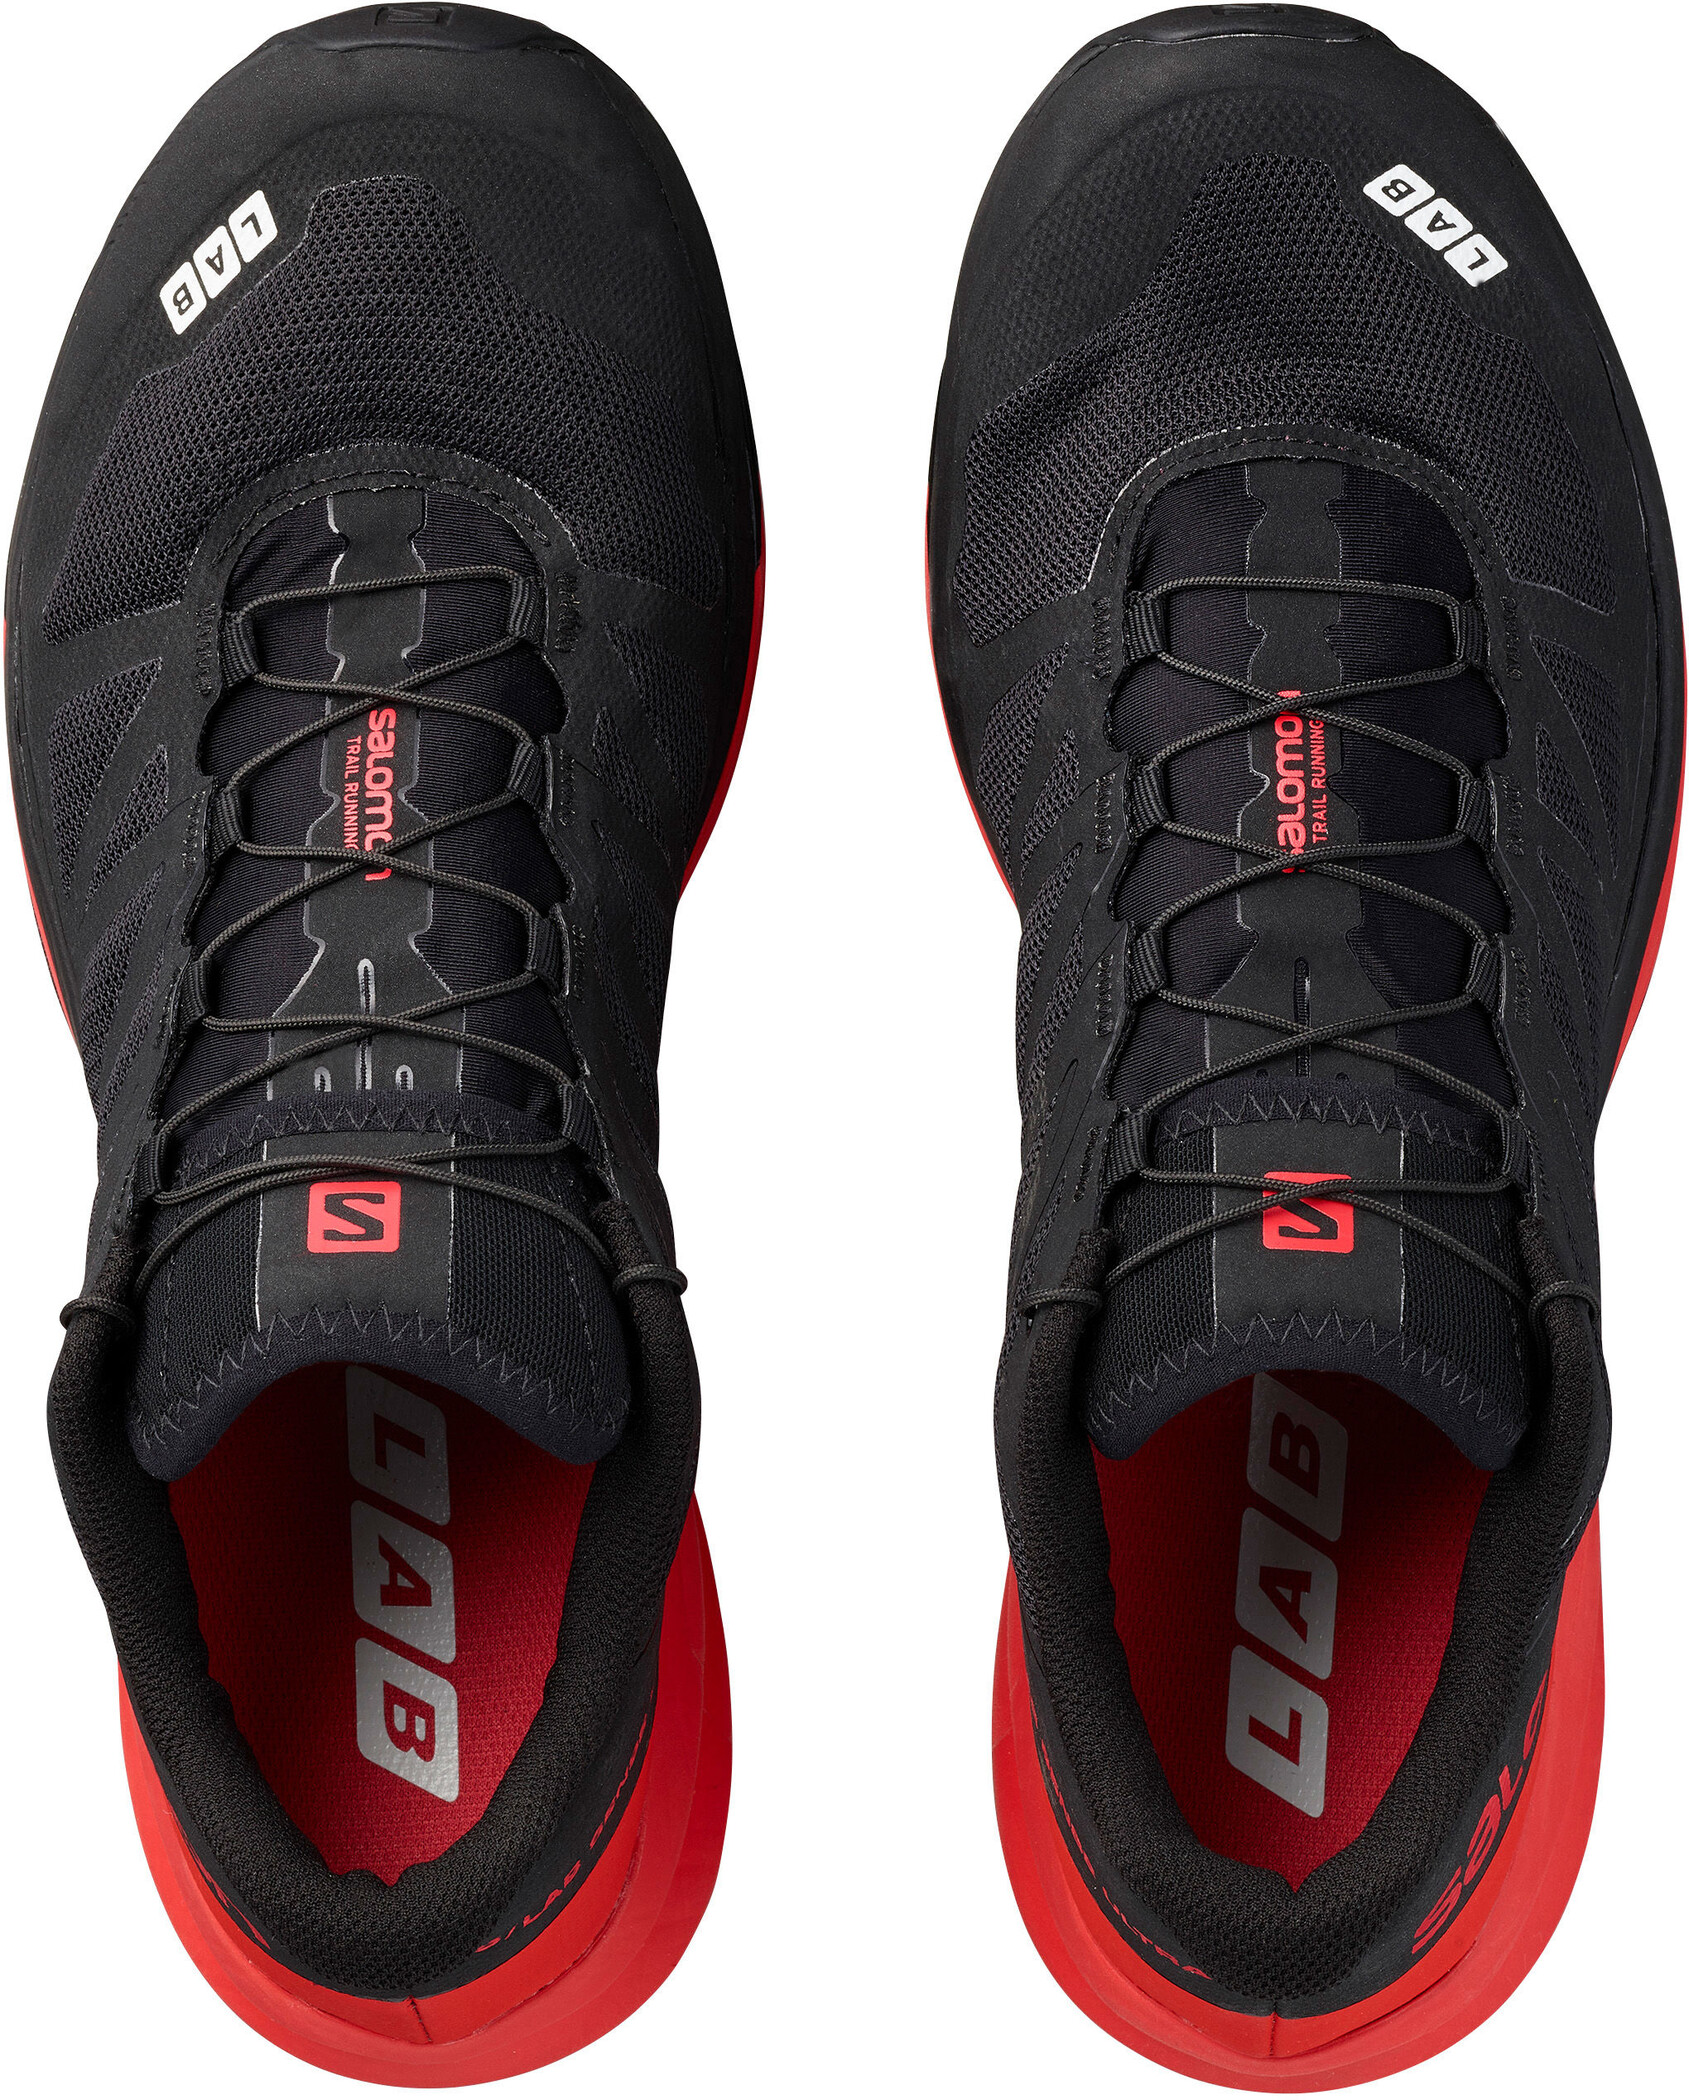 Salomon S Lab Sense Ultra Shoes blackredwhite